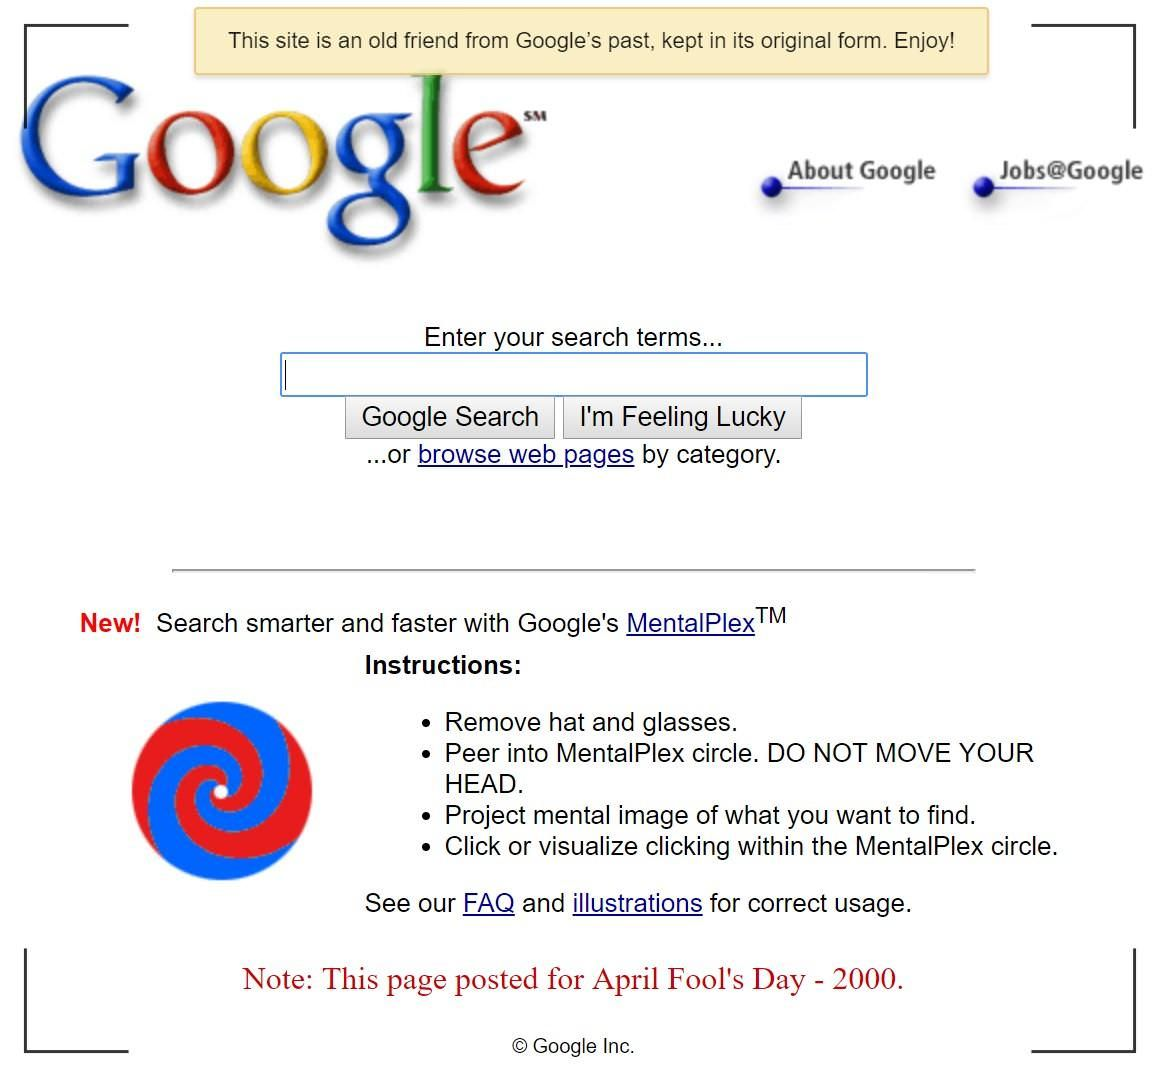 Google's first April Fools' Day hoax